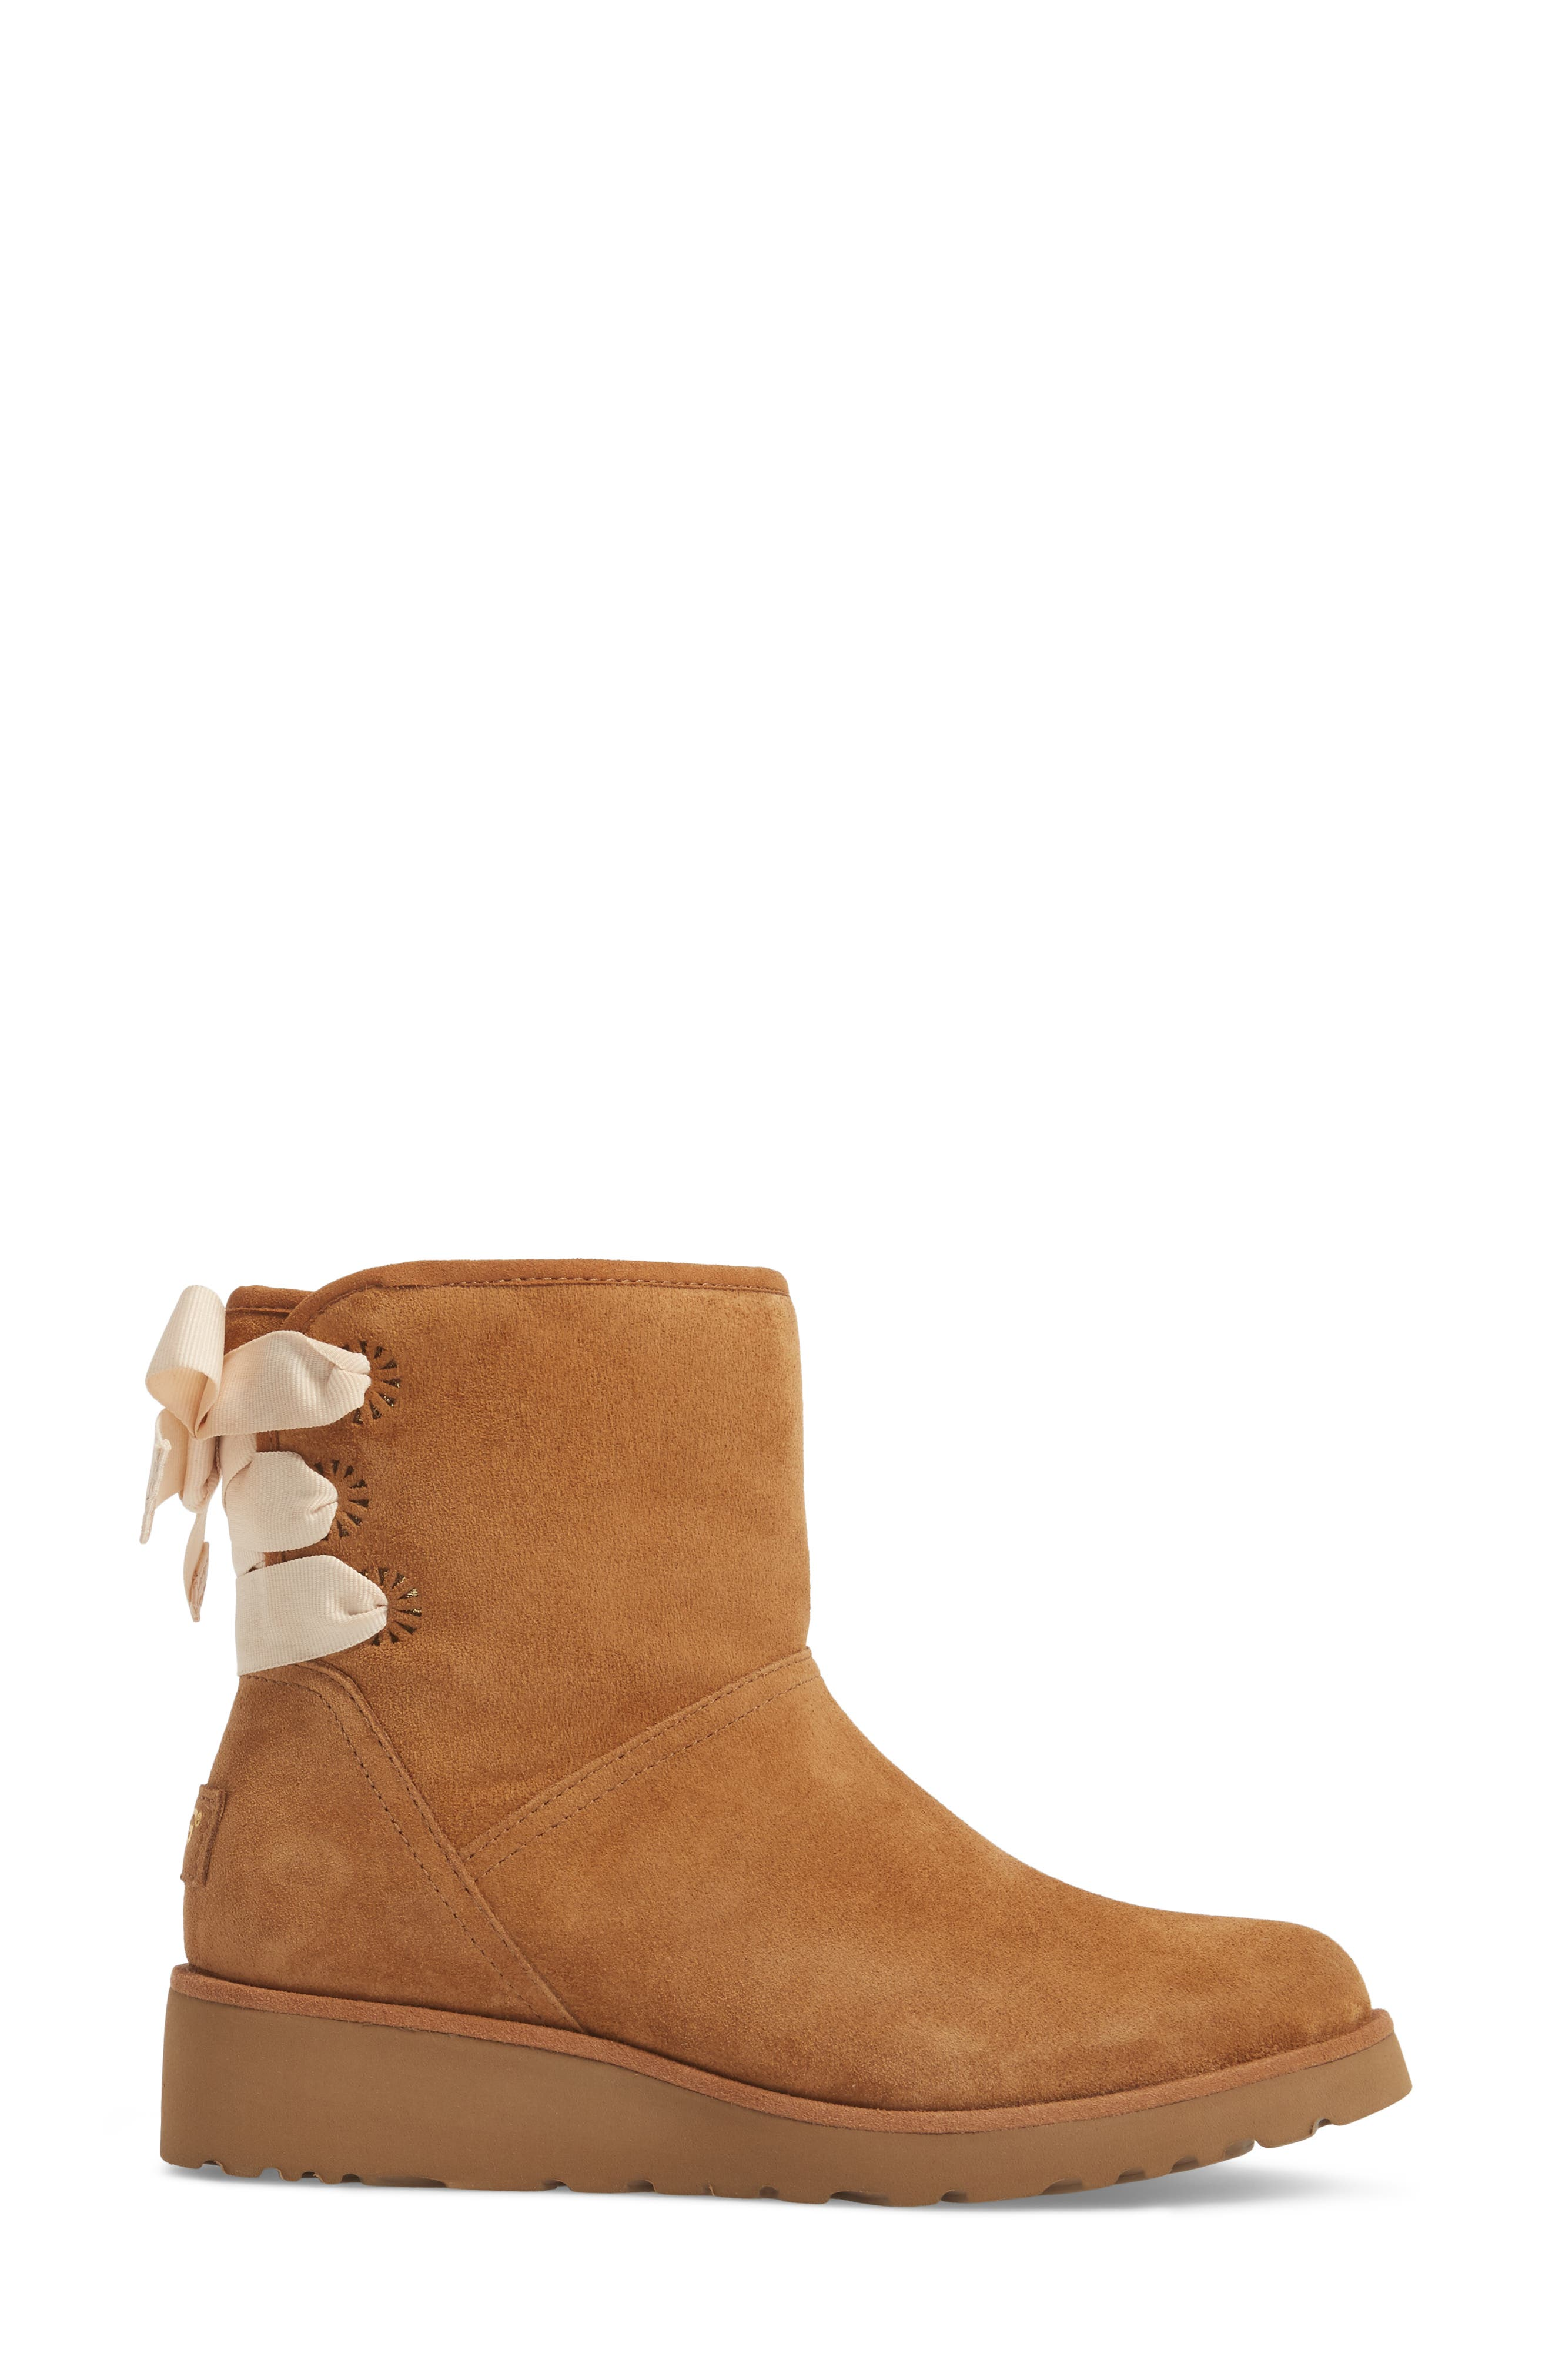 Drew Sunshine Perforated Tie Back Boot,                             Alternate thumbnail 8, color,